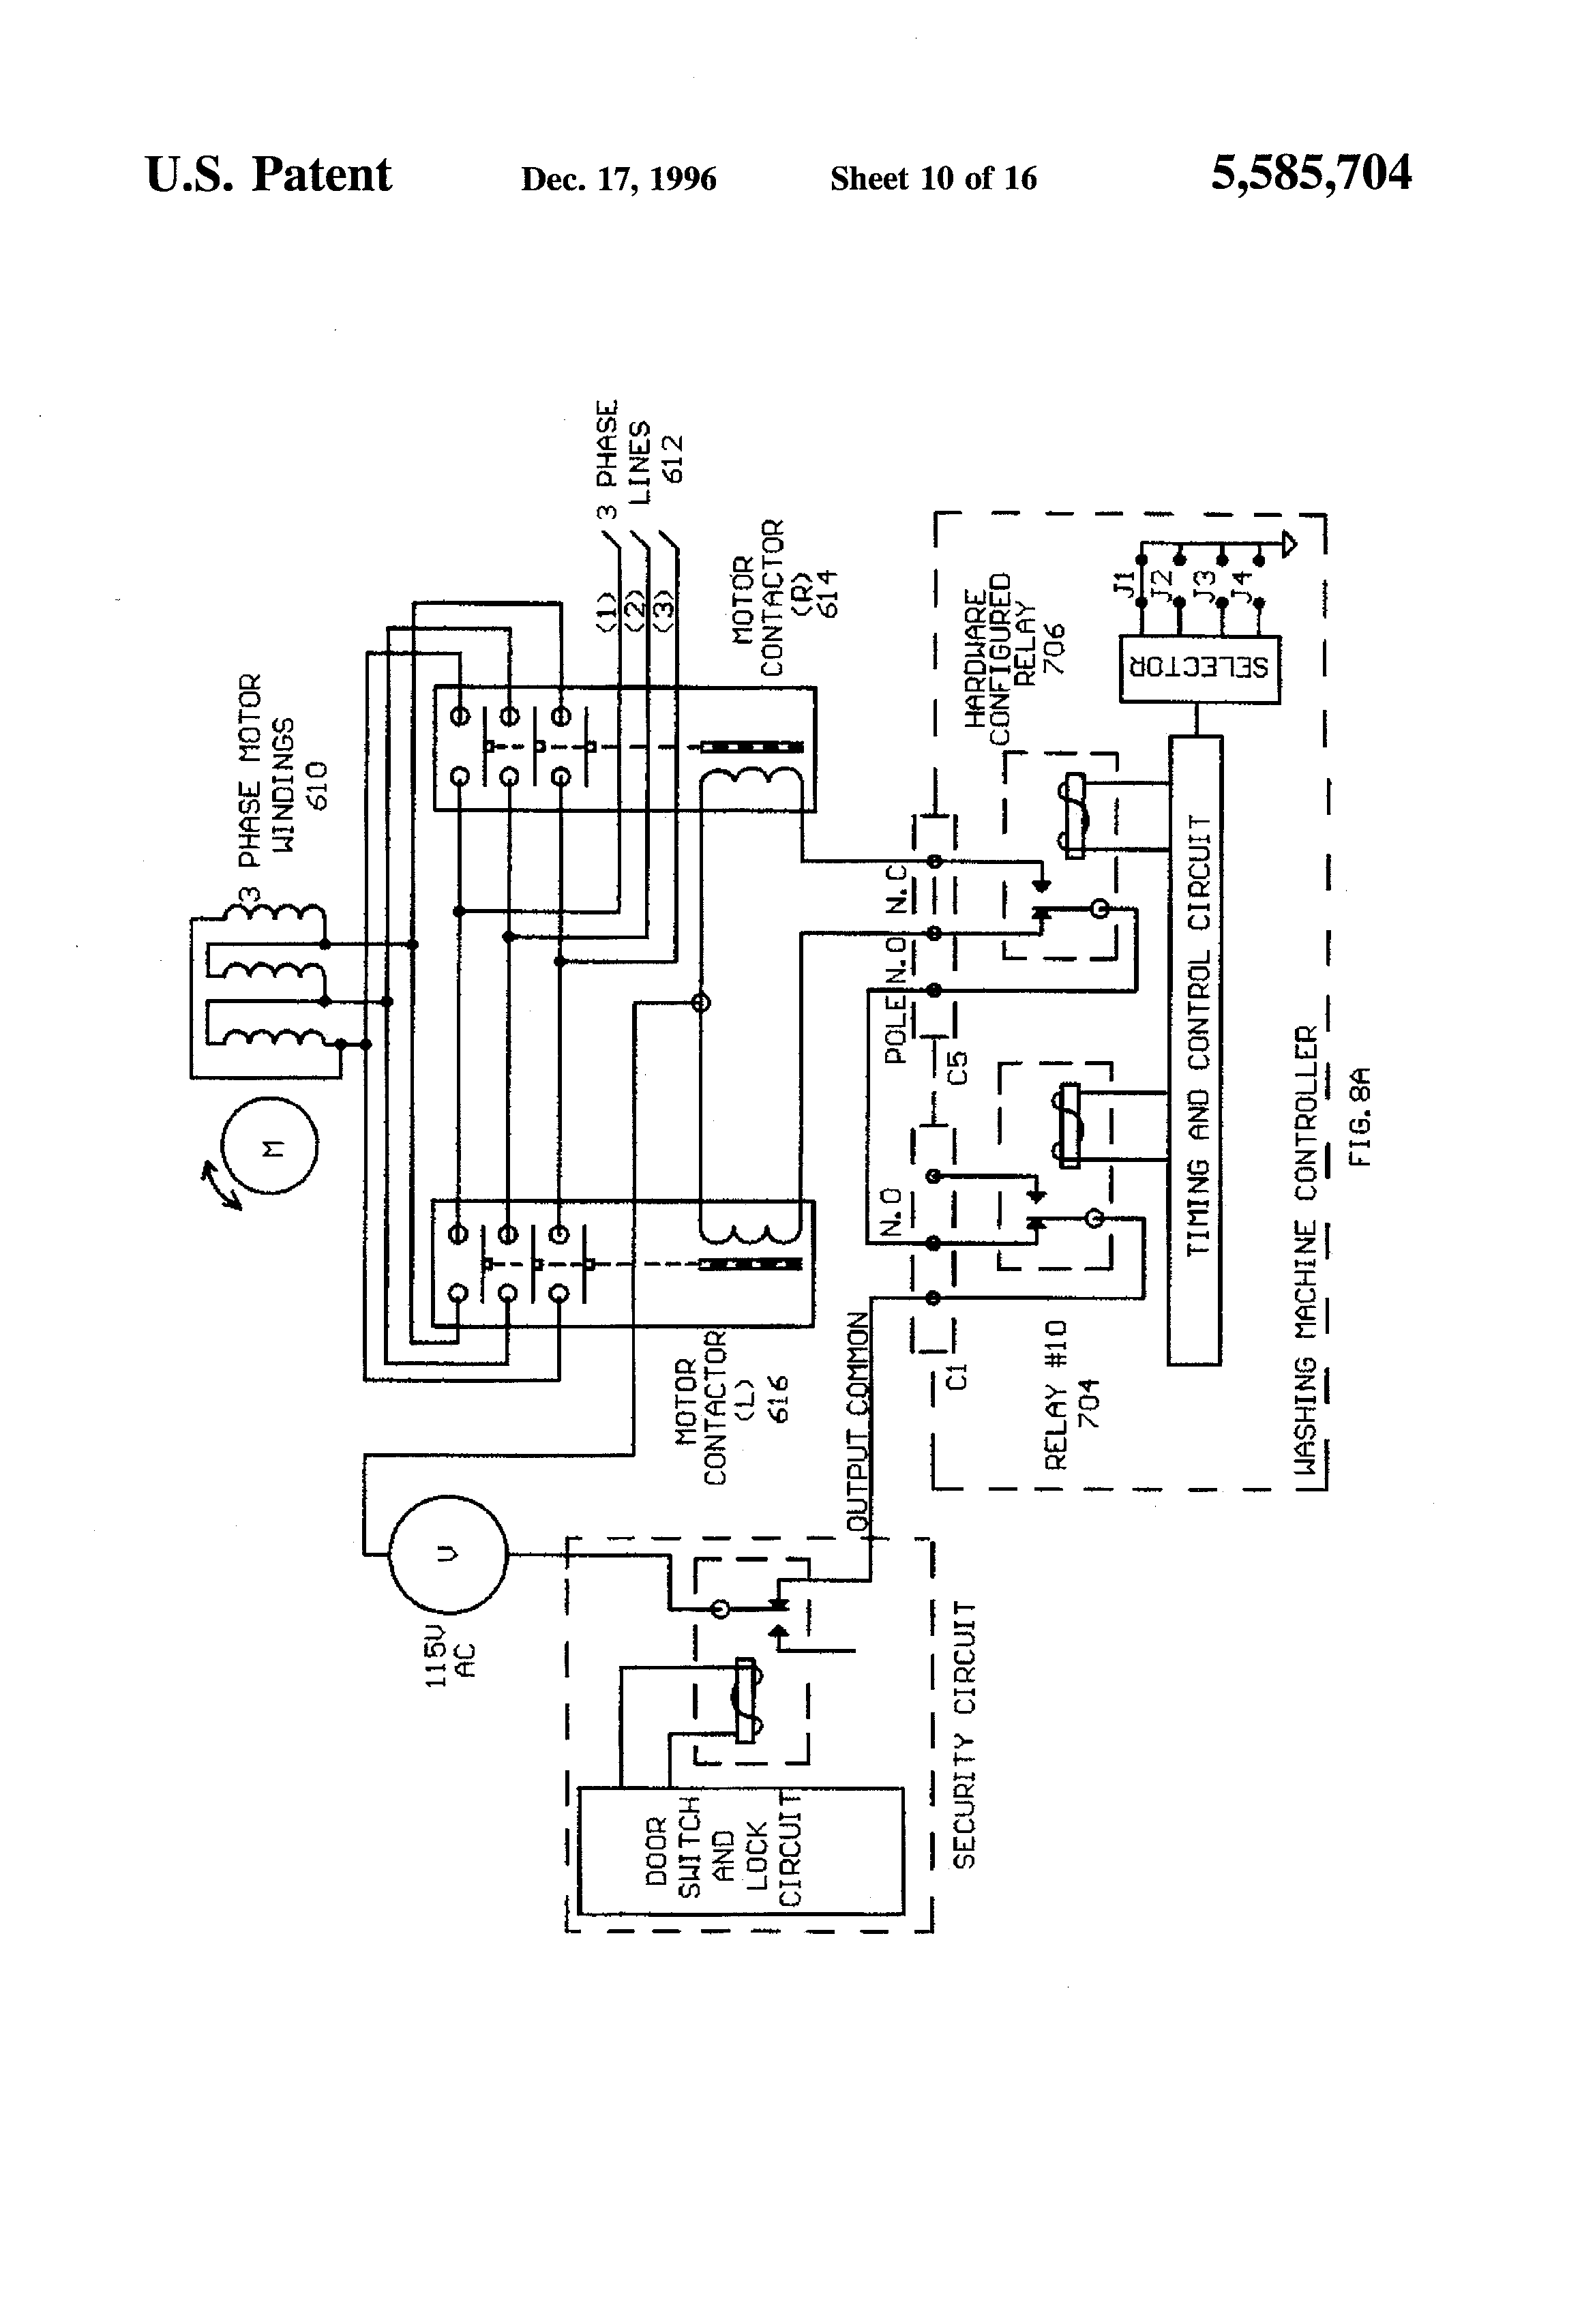 Ge Washer Wiring Schematic Great Design Of Diagram Microwave 1994 Filter Flo Motor 46 Washing Machine Range Circuit Js998